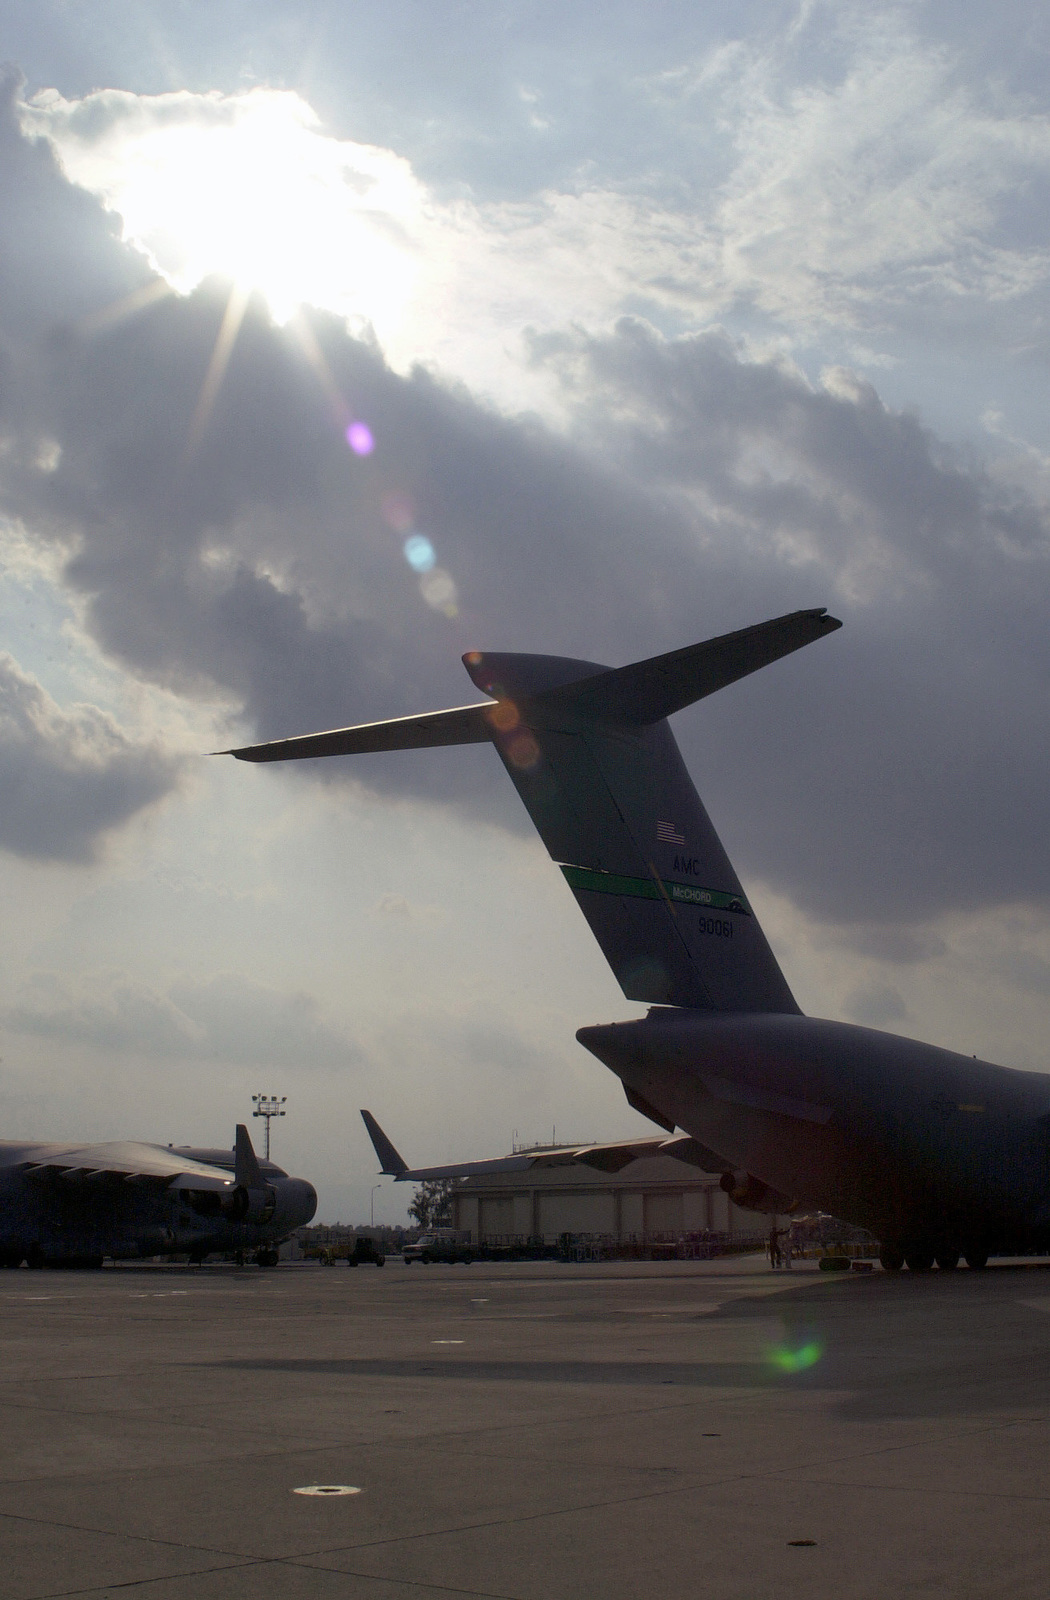 C-17A Globemaster IIIs, wait on the ramp to be loaded at Naval Air Station (NAS) Sigonella, Italy. The aircraft will carry troops and cargo to forward locations in support of OPERATION ENDURING FREEDOM. In response to the terrorist attacks on September 11, 2001 at the New York World Trade Center and the Pentagon, President George W. Bush initiated Operation ENDURING FREEDOM in support of the Global War on Terrorism (GWOT), fighting terrorism abroad